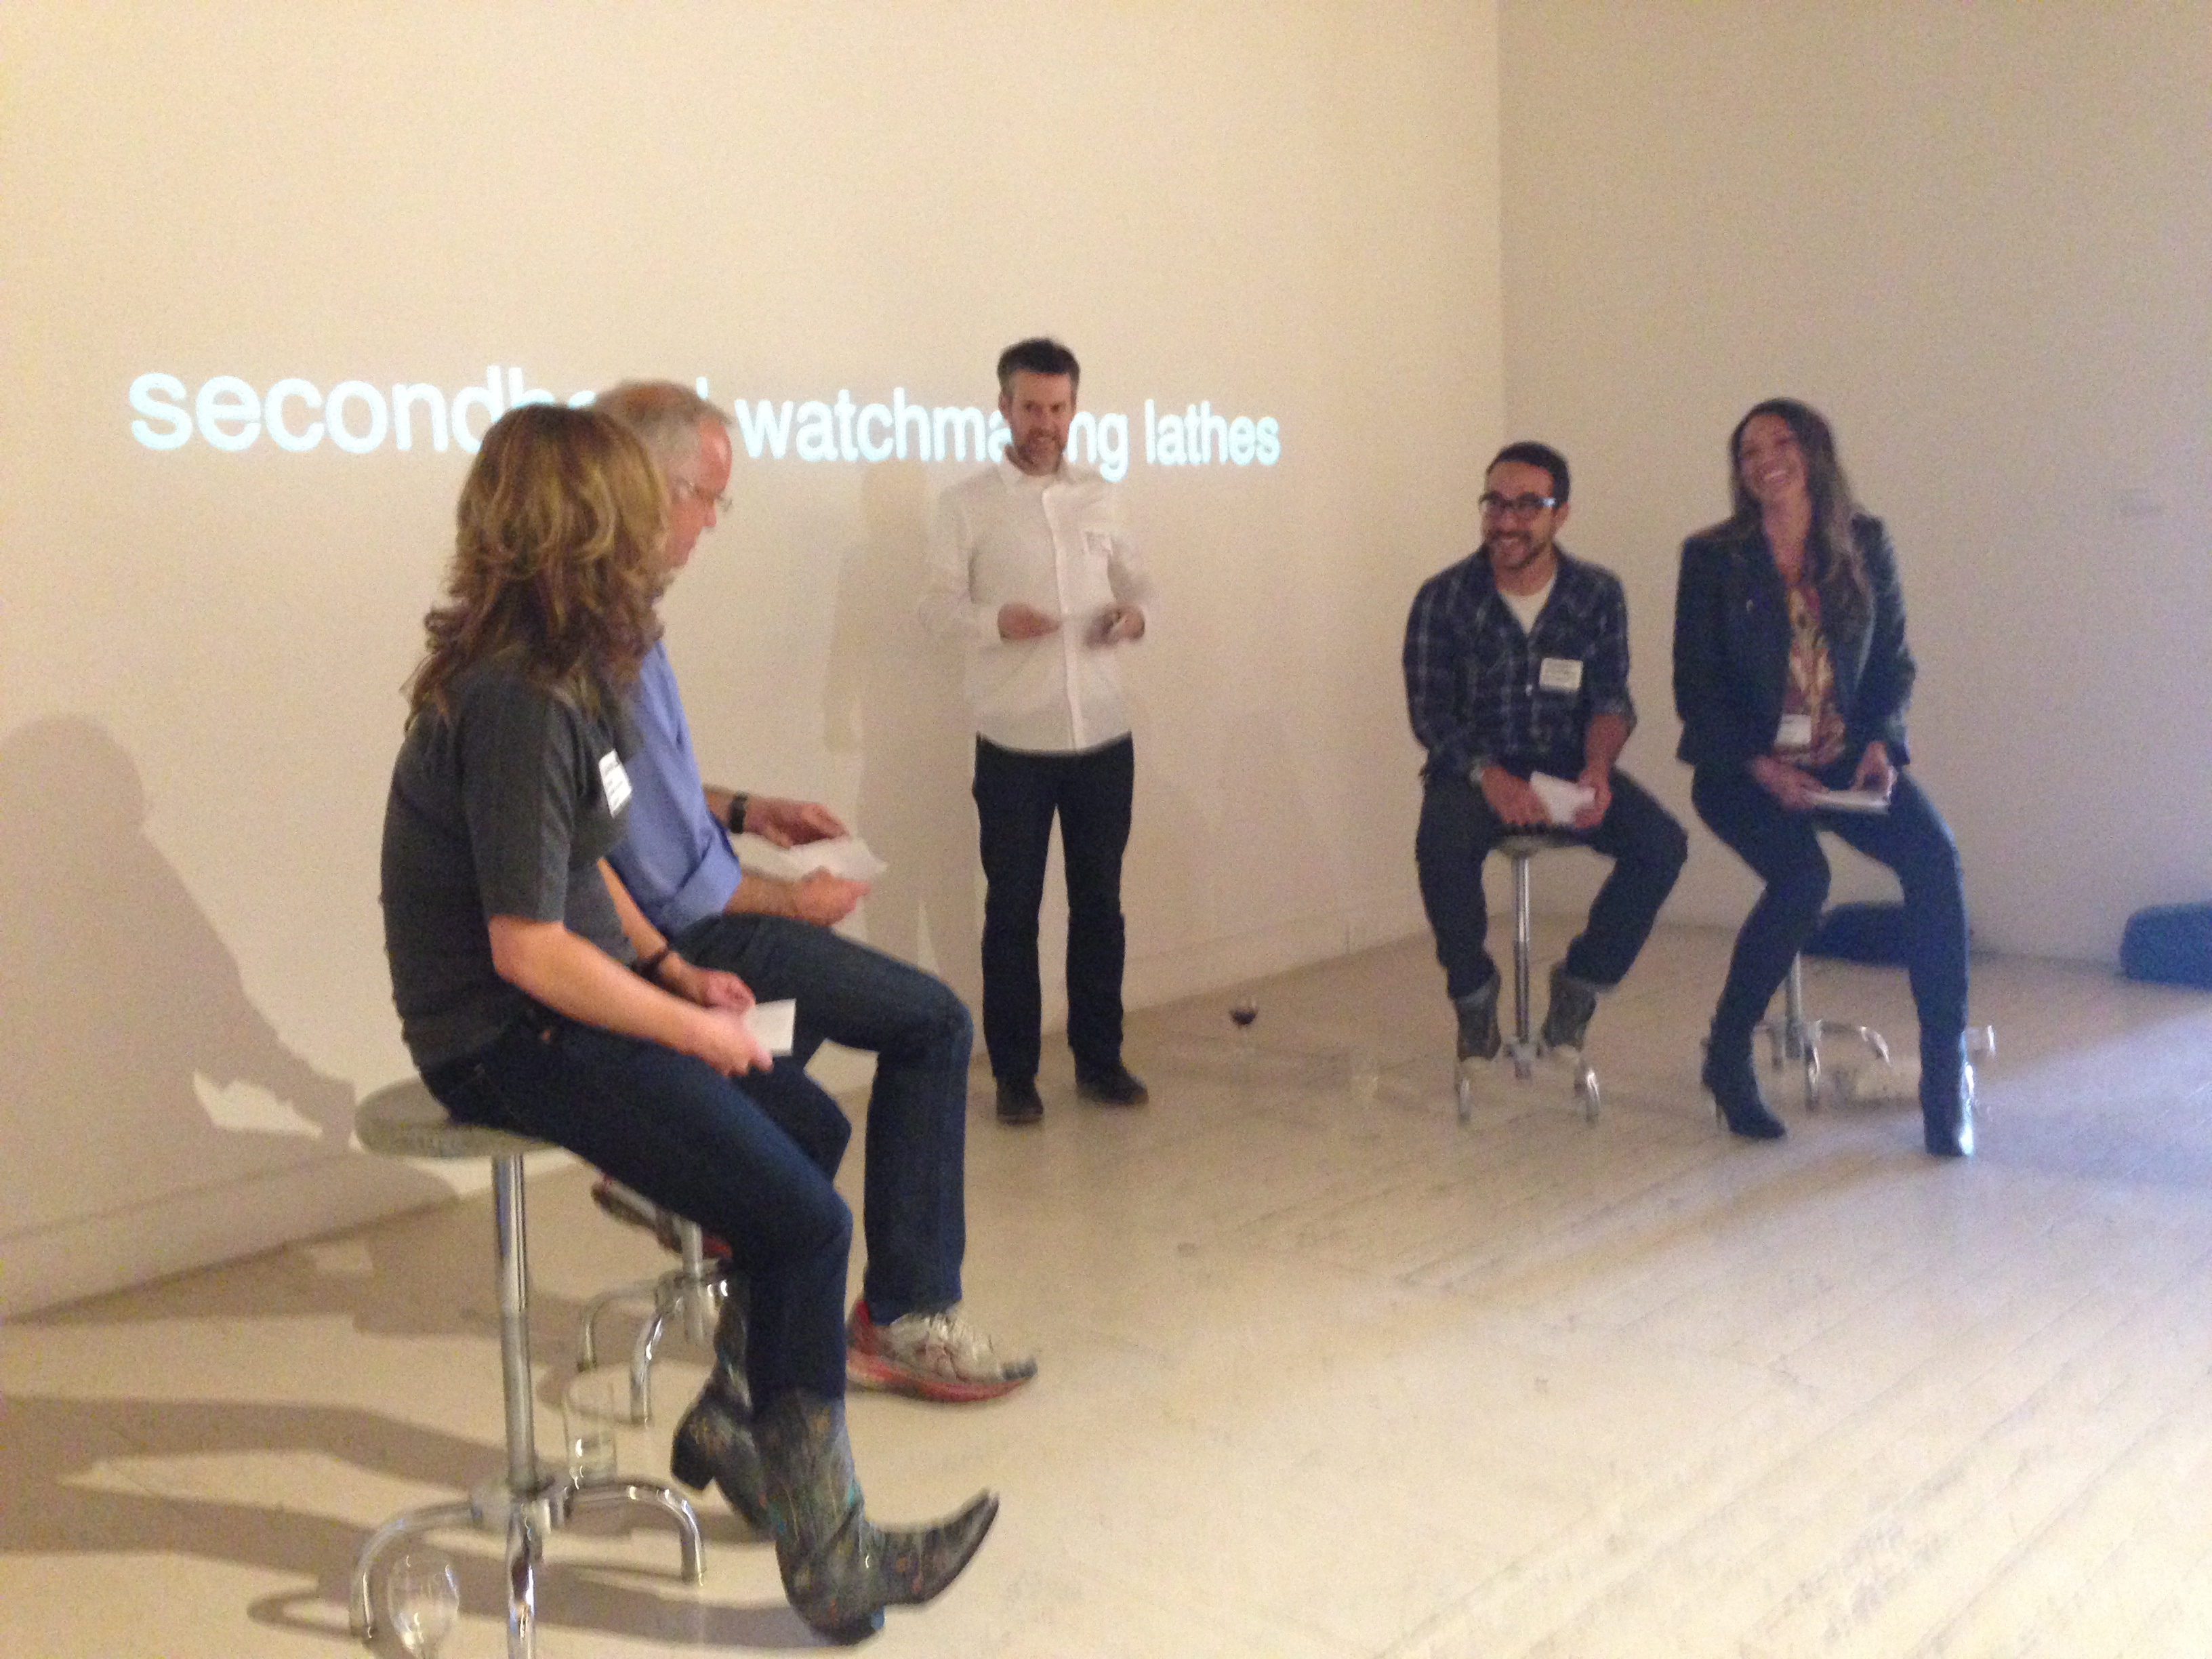 TDA's Schoenie and I on a panel at BMOCA with BDW and Digiday last week